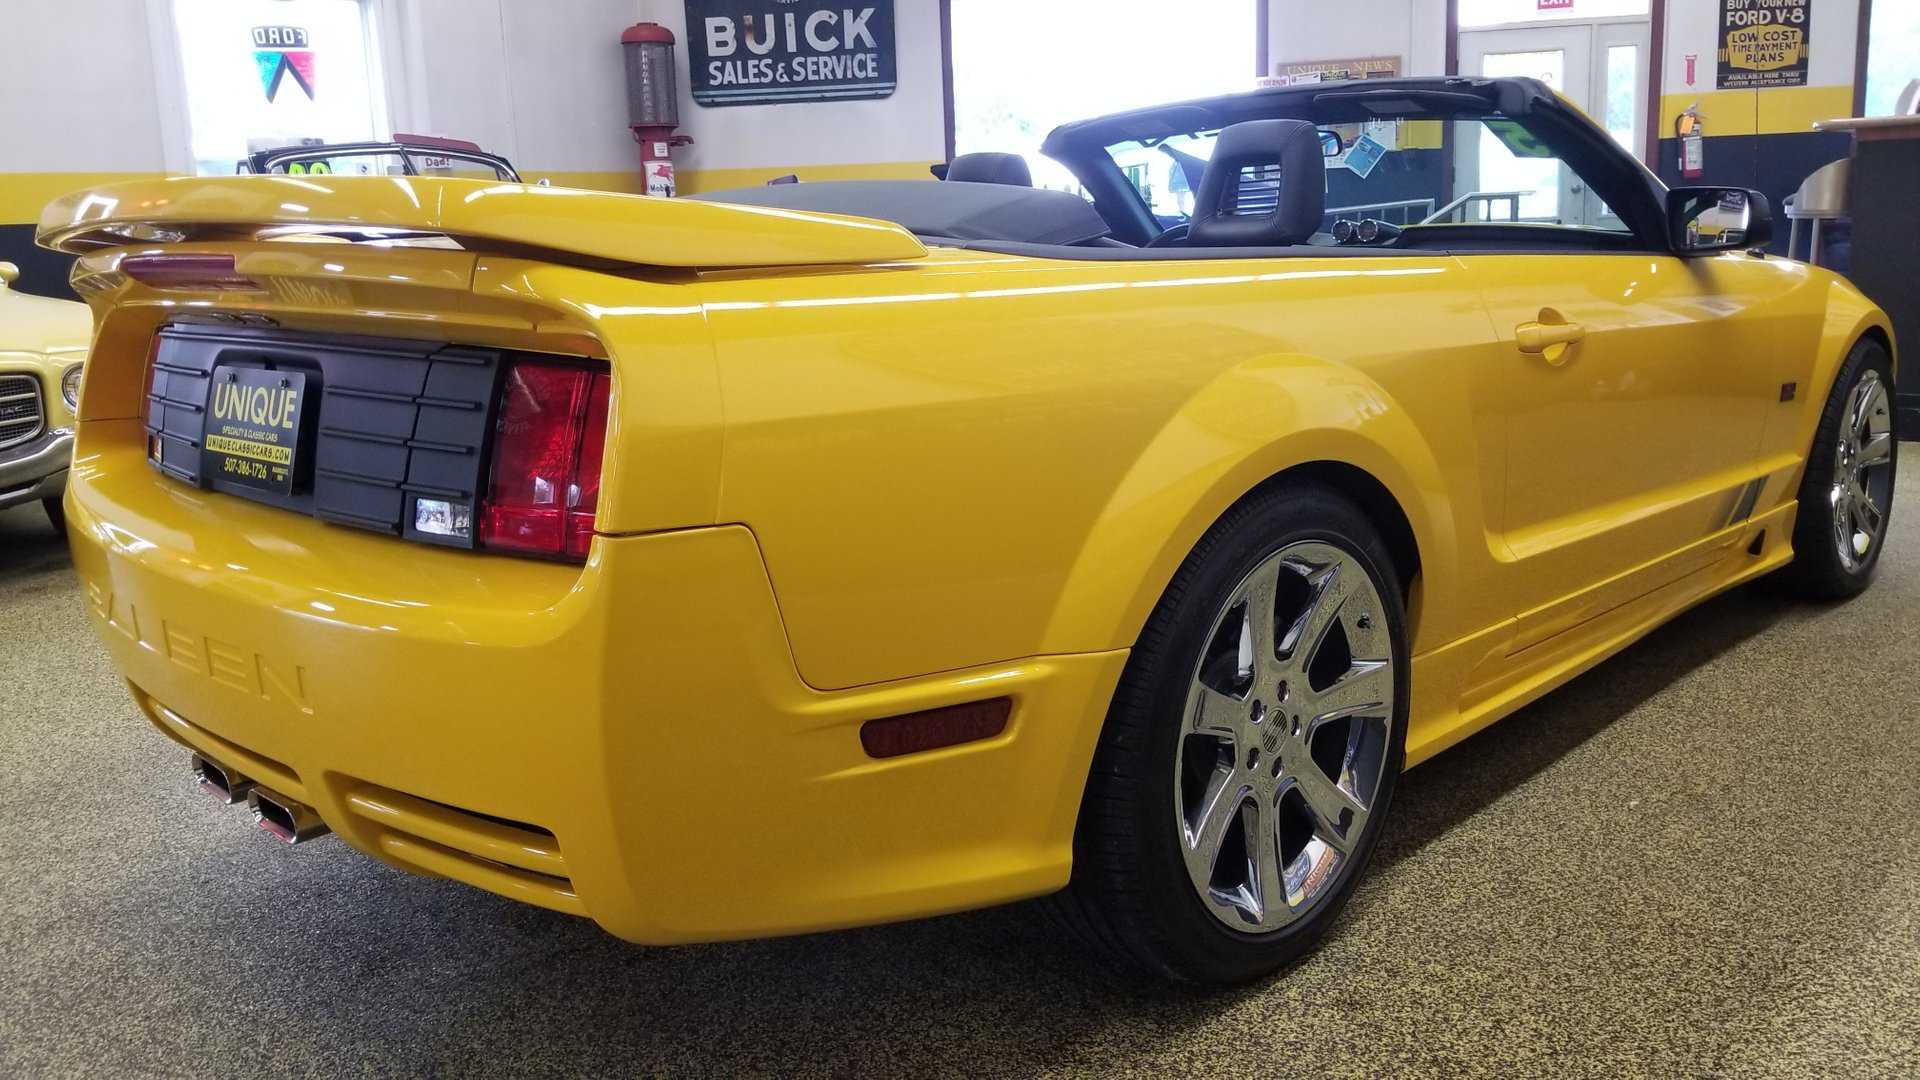 Near Delivery Mileage 2005 Saleen Mustang Is Insane Value